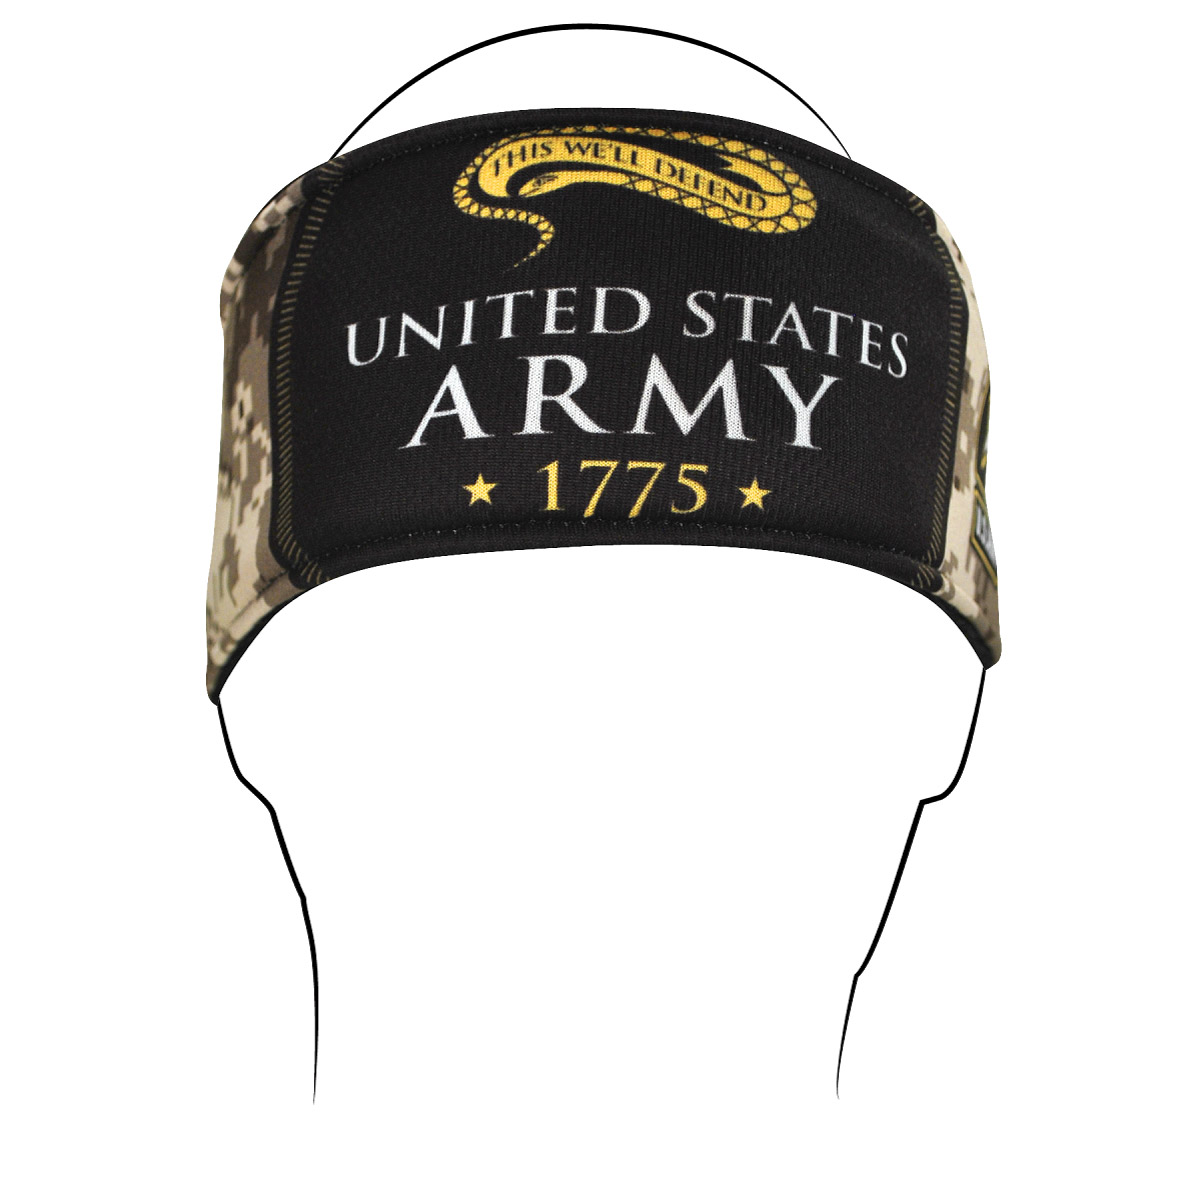 ZAN headgear U.S. Army, Camo Logo Headband